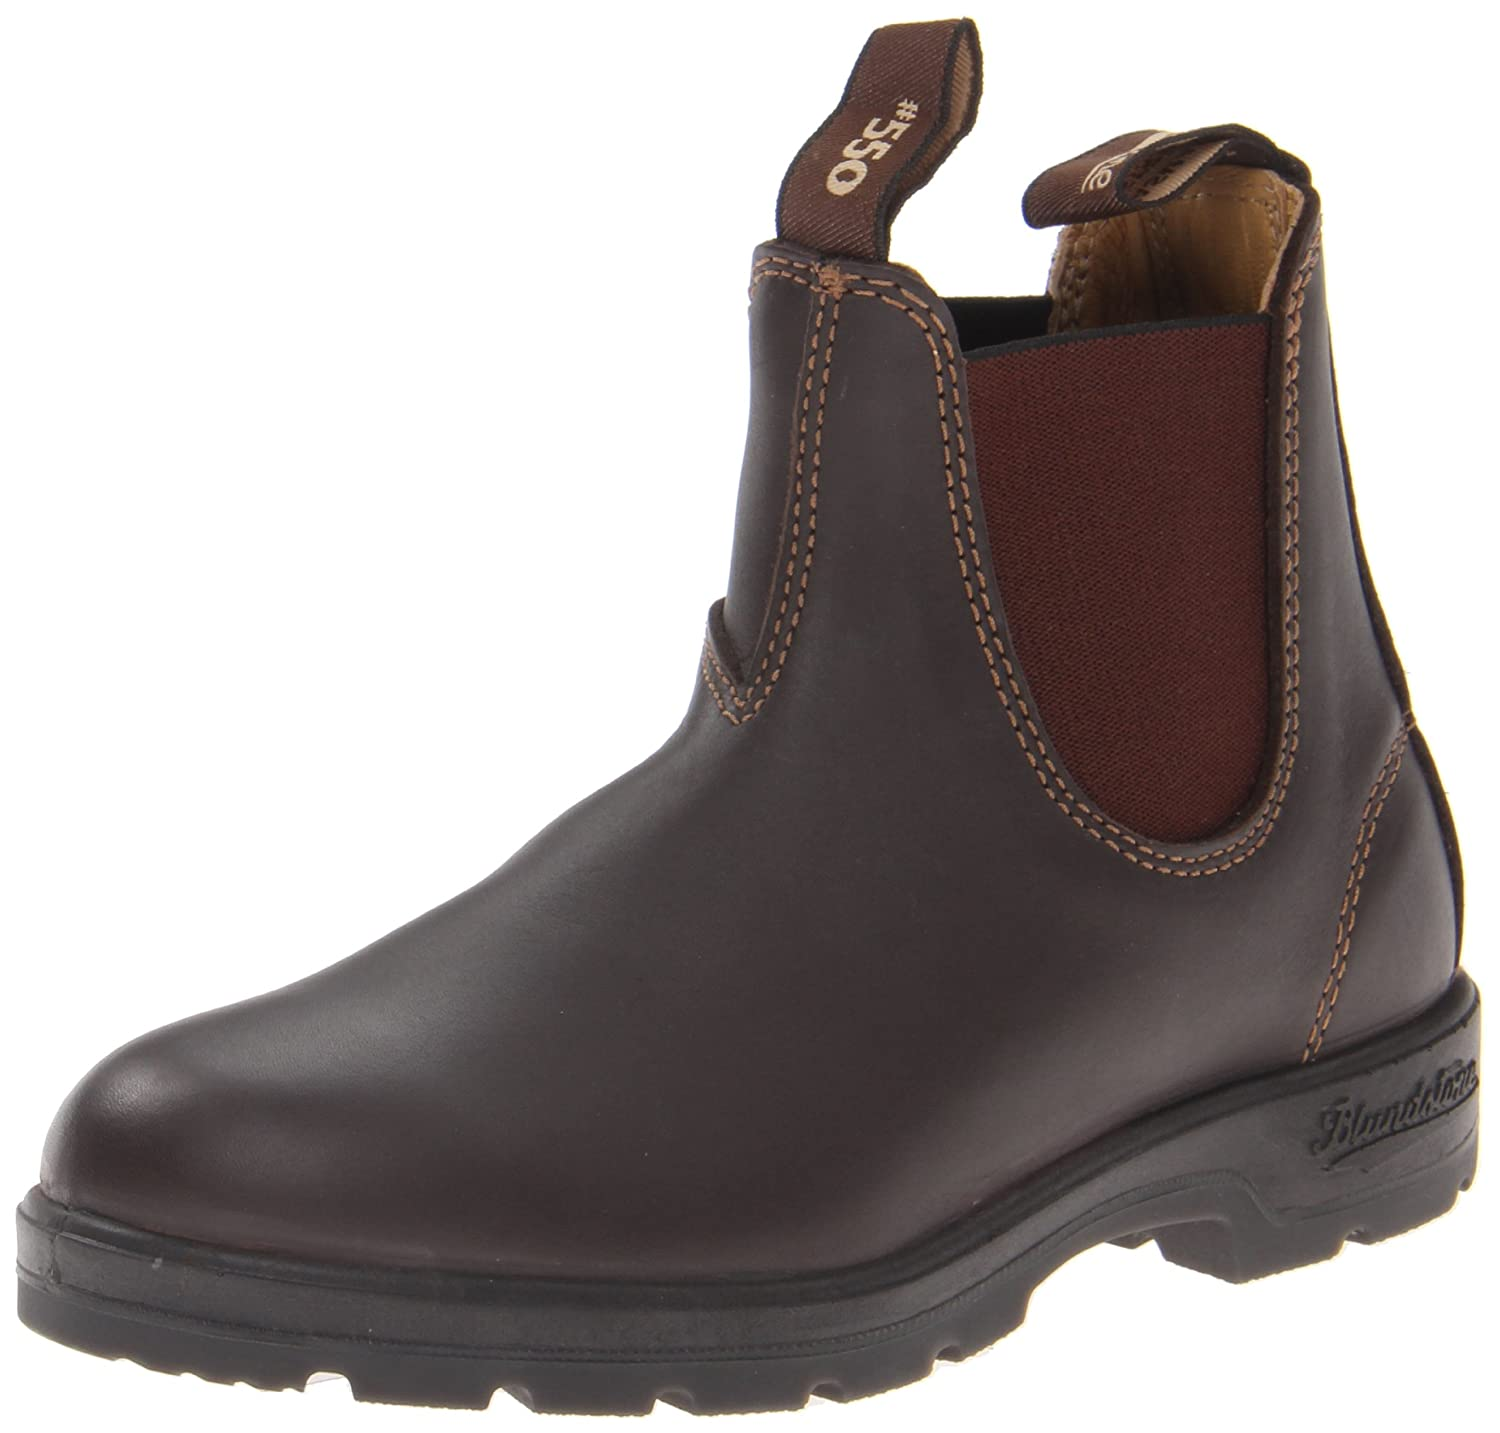 Blundstone Unisex Super 550 Series Boot B000Y04YZS 8 UK/9 M US/11 B(M) US|Walnut